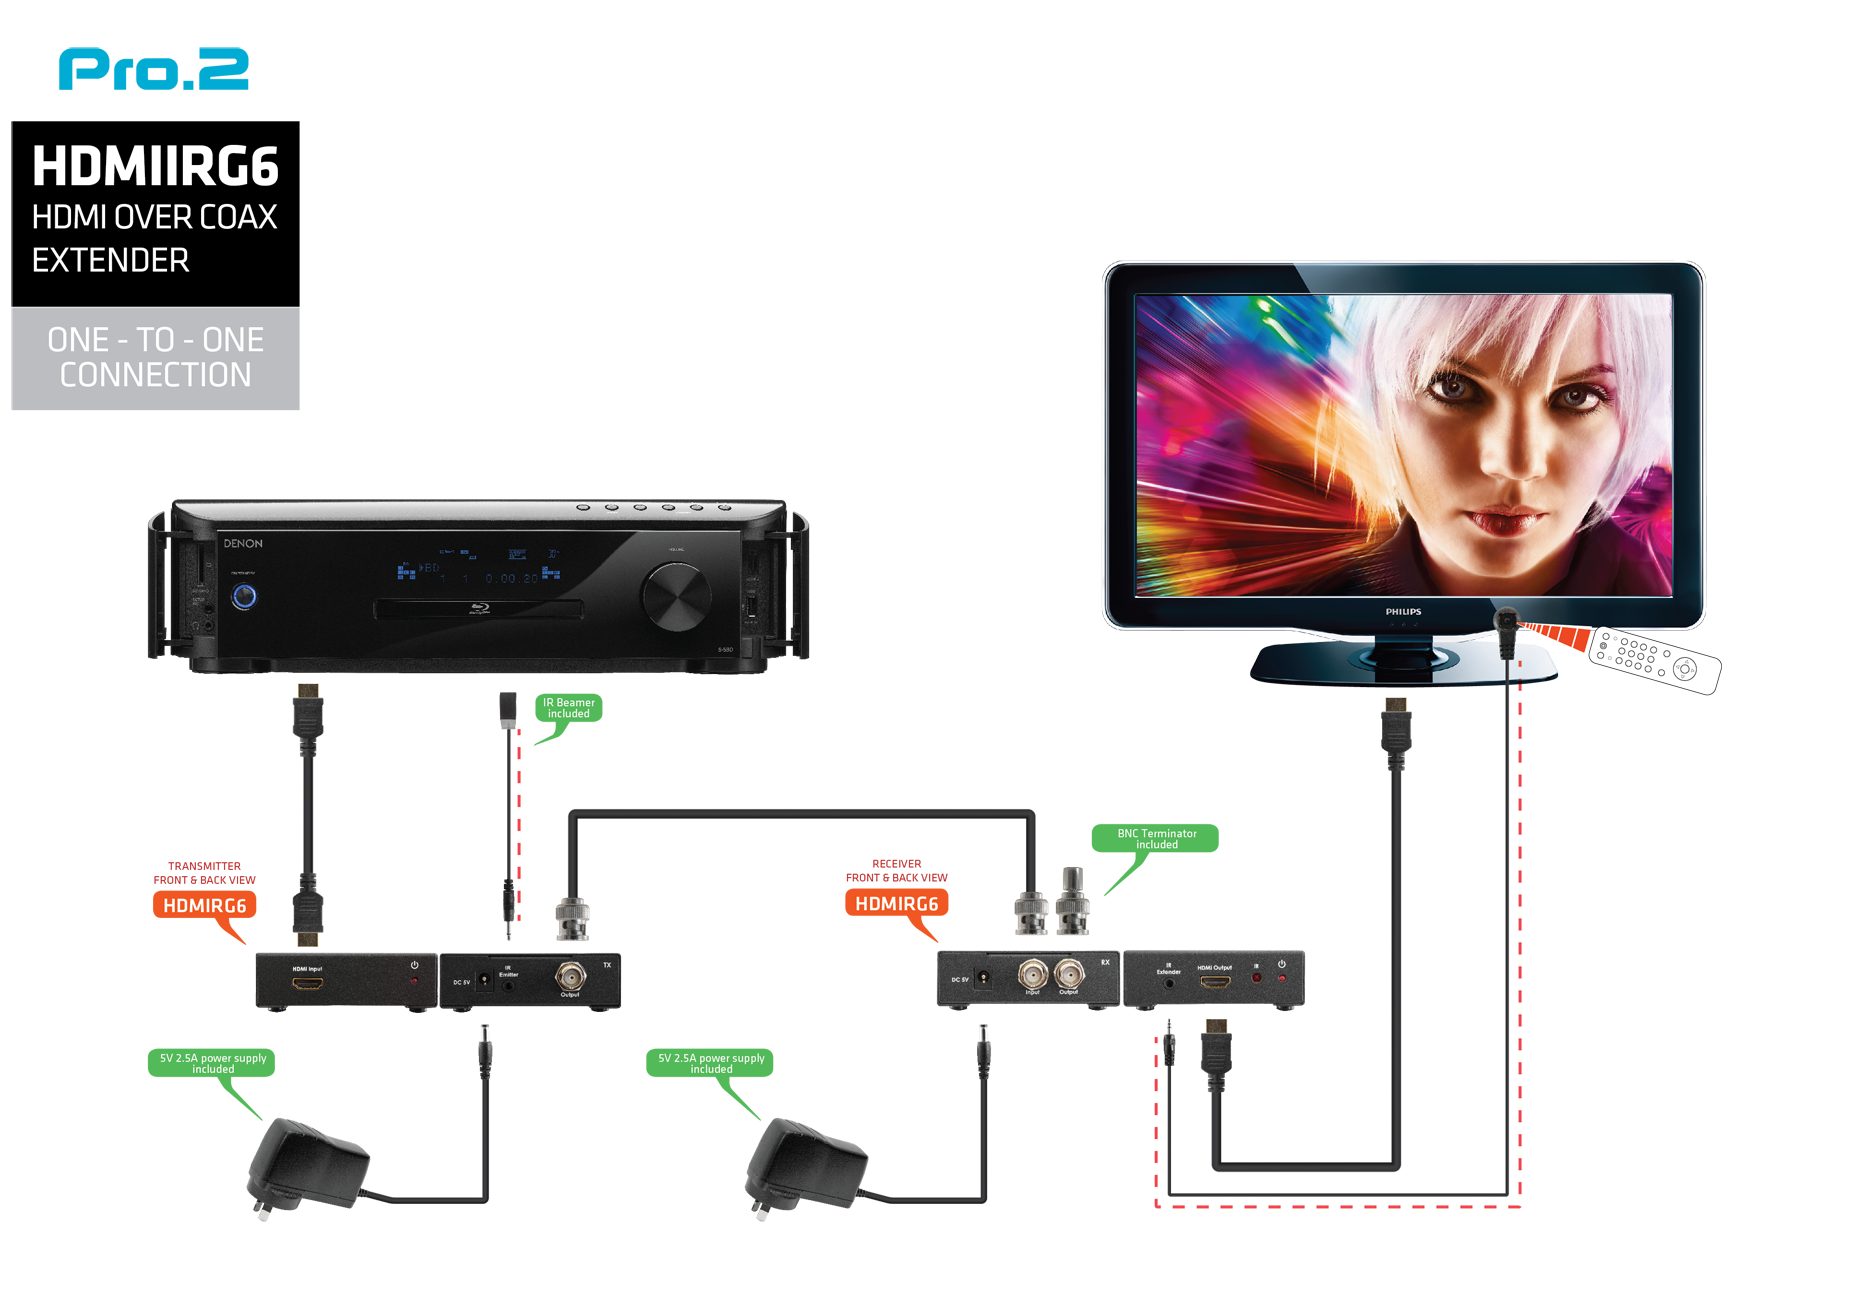 HDMIRG6 HDMI OVER SINGLE COAXIAL WITH IR | Pro2 on surround sound connection diagram, surround sound hook up diagram, rca surround sound system diagram,